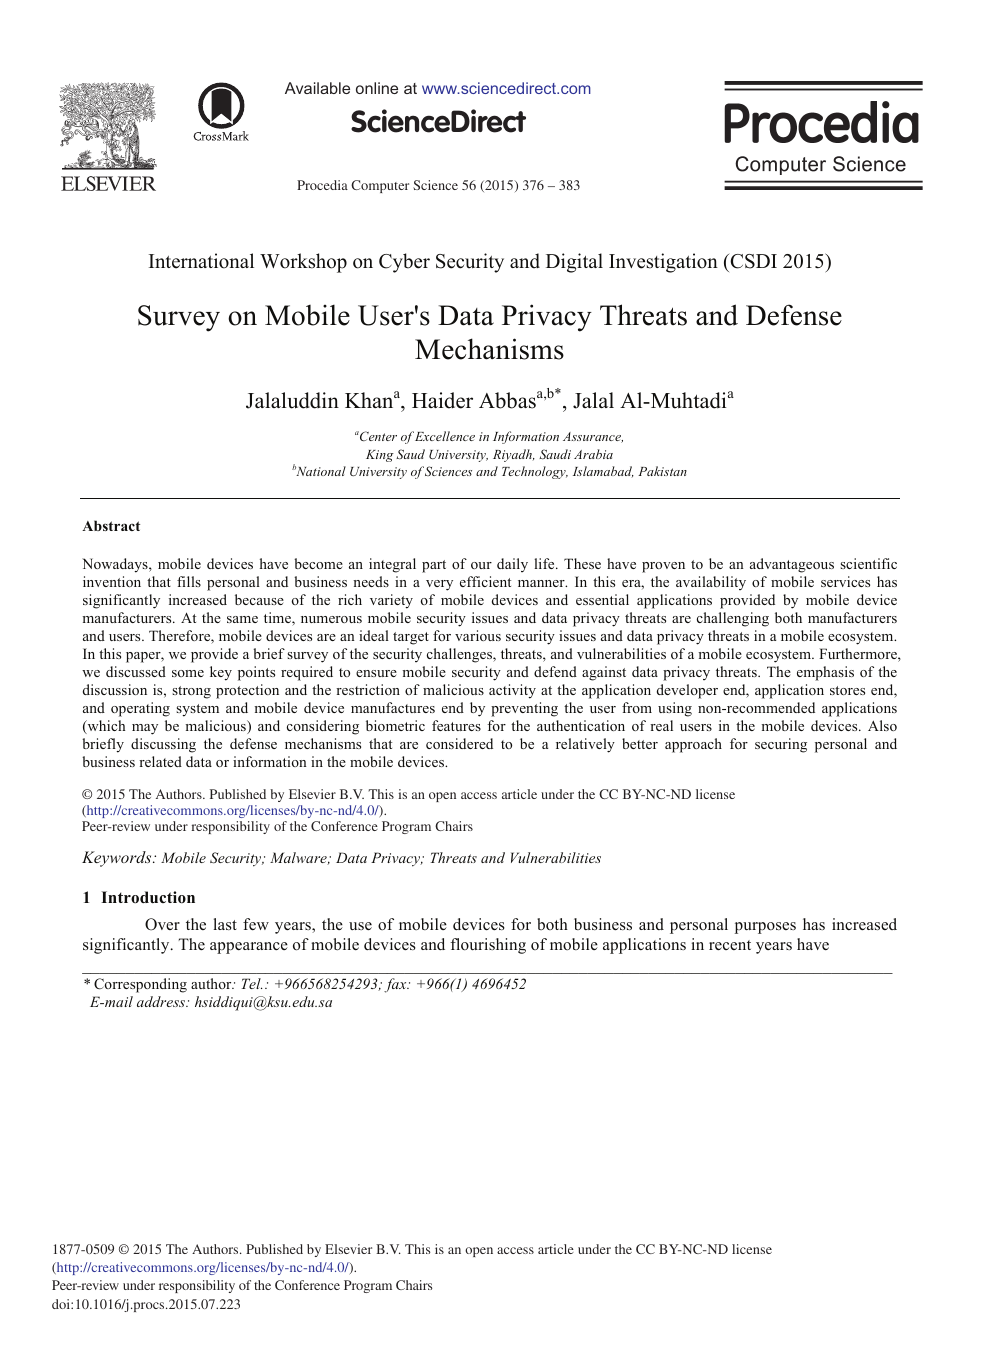 Survey on Mobile User's Data Privacy Threats and Defense Mechanisms